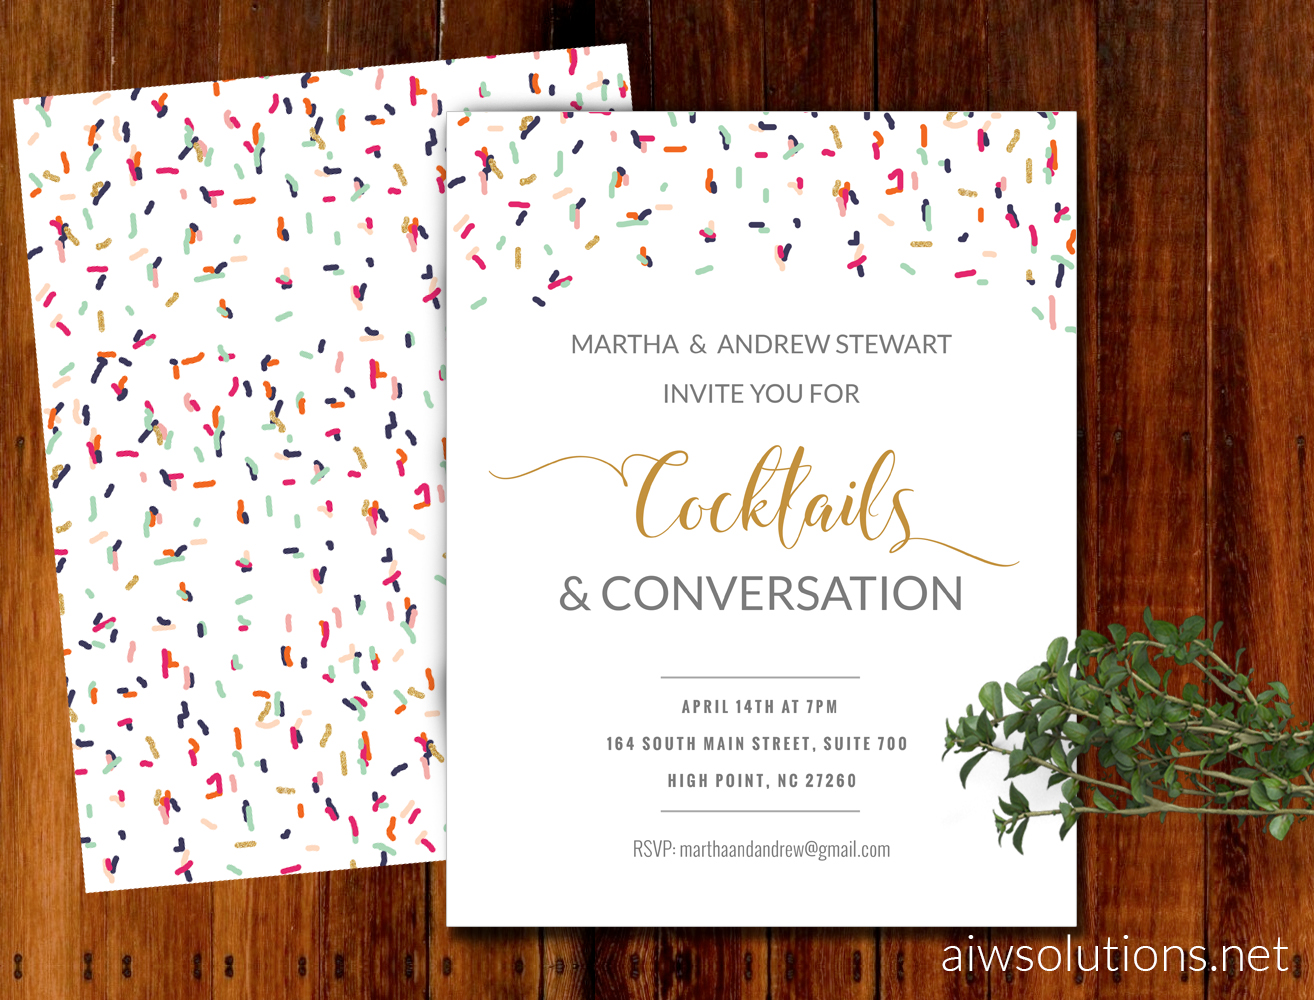 Invitations event templatesave the date template flyer template flyer templatet invitation template 1 stopboris Gallery